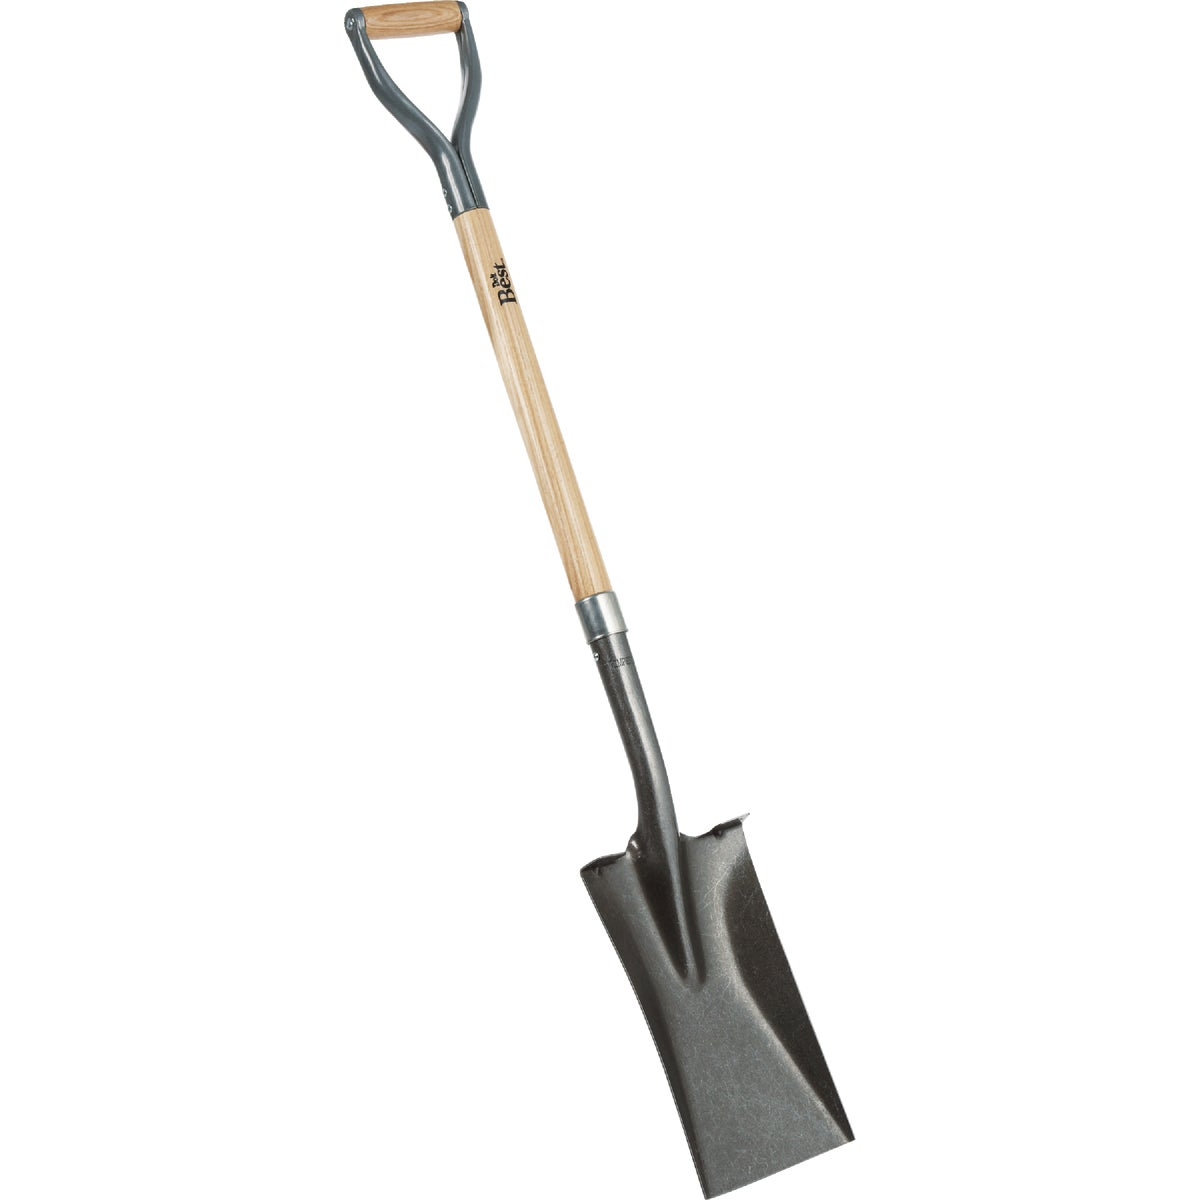 GARDEN SPADE - YN-8SF2-7-3Y by Do it Best